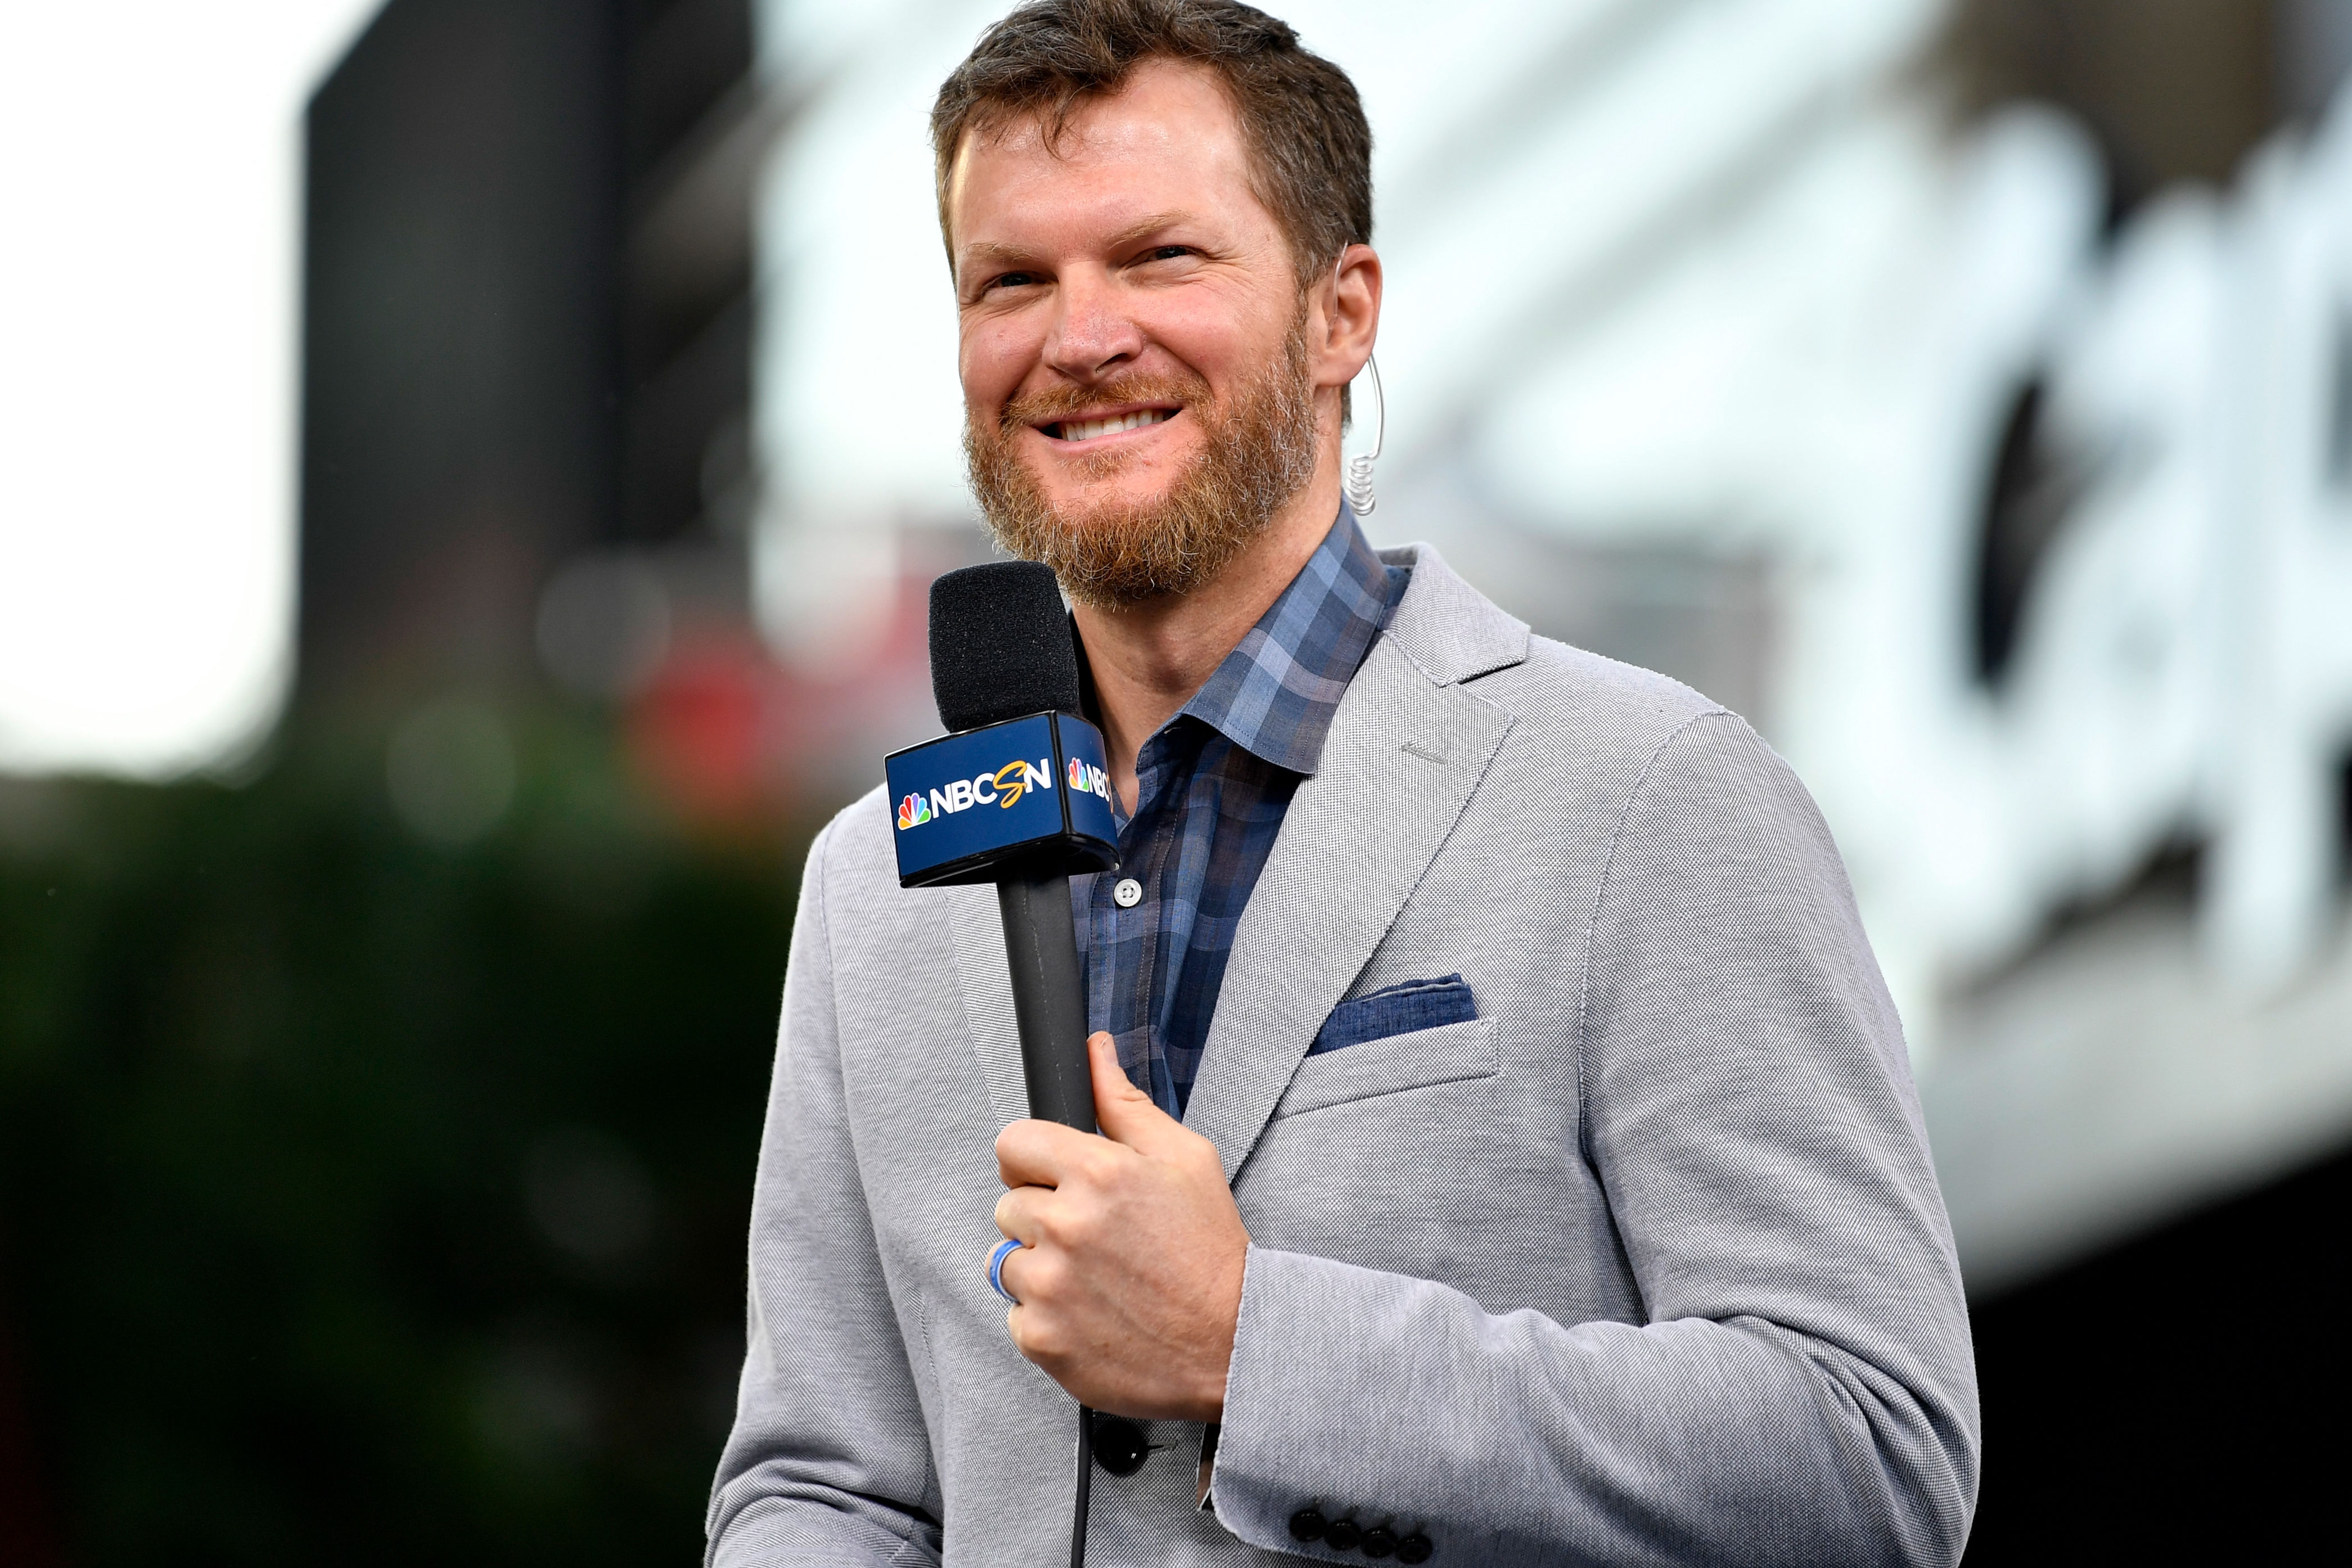 Dale Earnhardt Jr. Receives a Magical Sign from His Late Mom as He Spreads Her Ashes